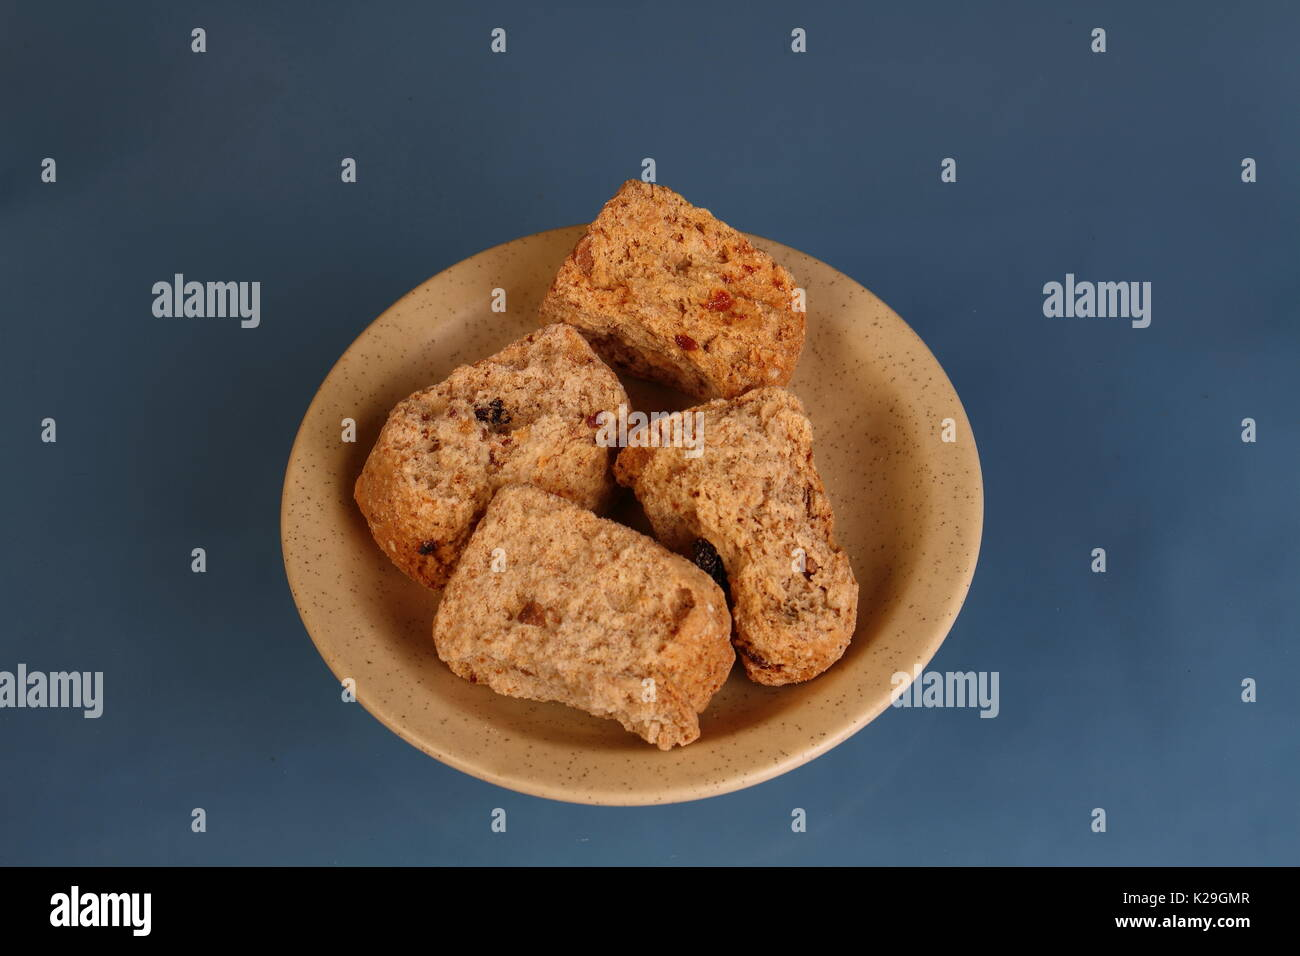 Rusks - a traditional Afrikaner and South African breakfast meal or snack in landscape format on a clear background with copy space - Stock Image